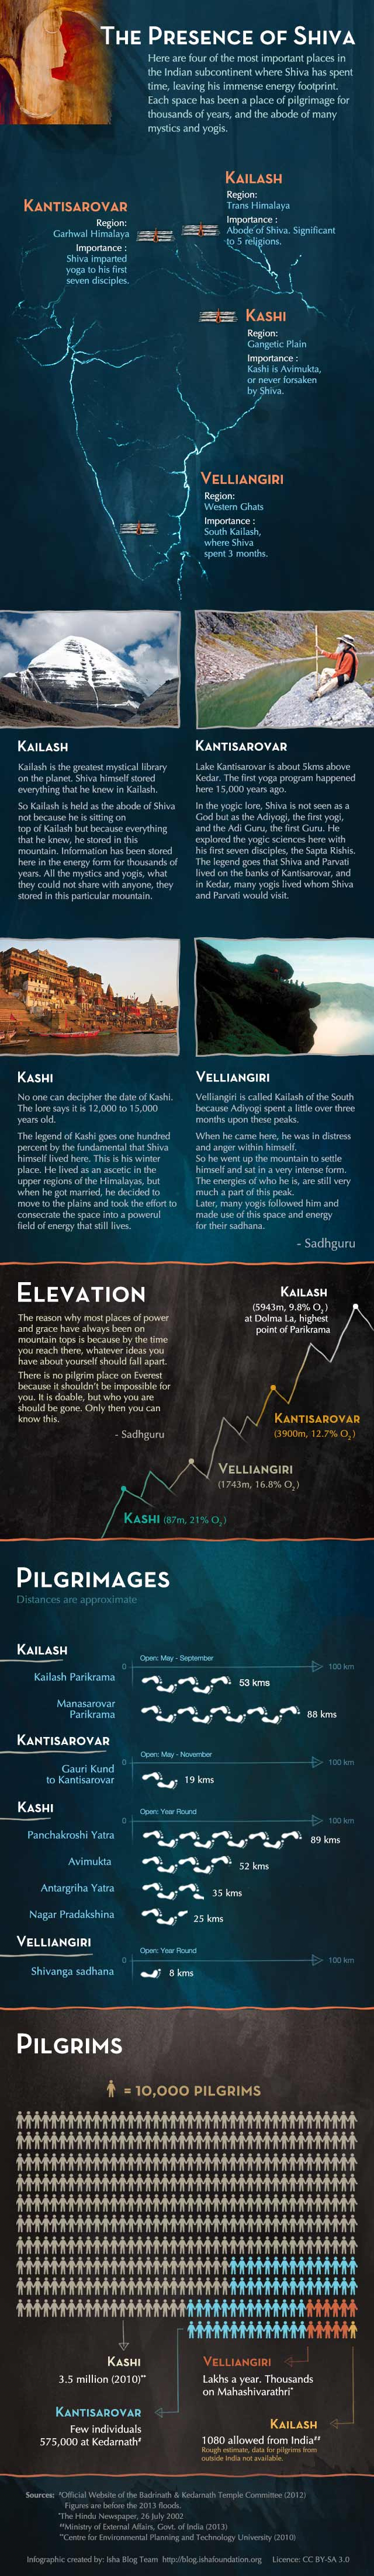 Infographic - The Presence of Shiva – On the Trail of the First Yogi